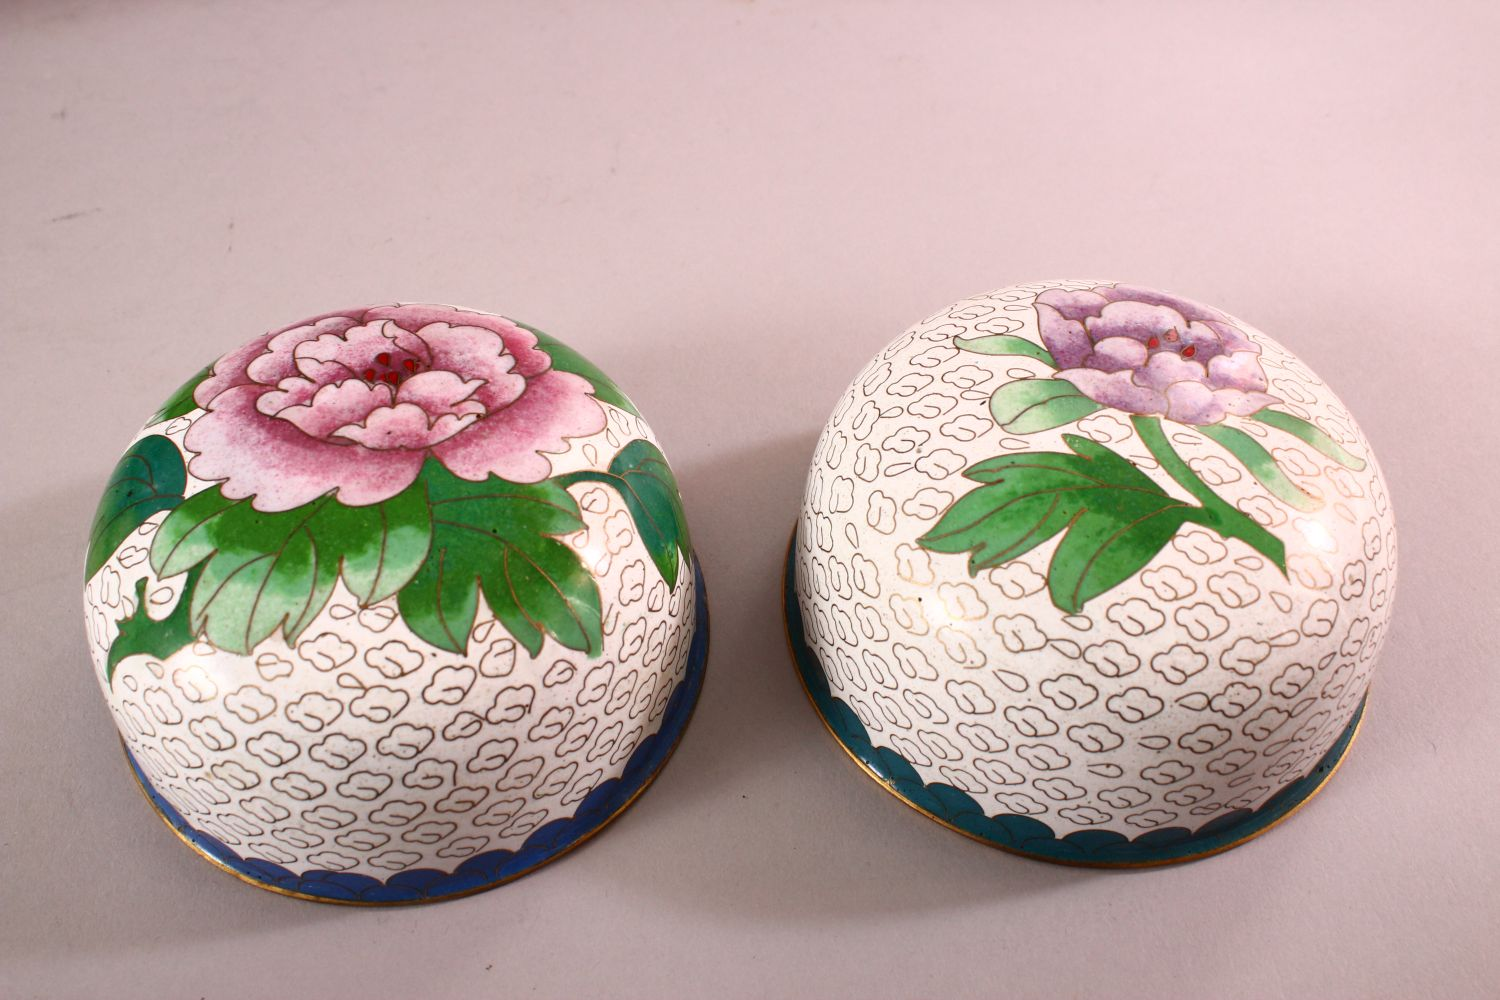 A PAIR OF CHINESE CLOISONNE GINGER JARS & COVERS, each with a white ground and floral decoration, - Image 6 of 7